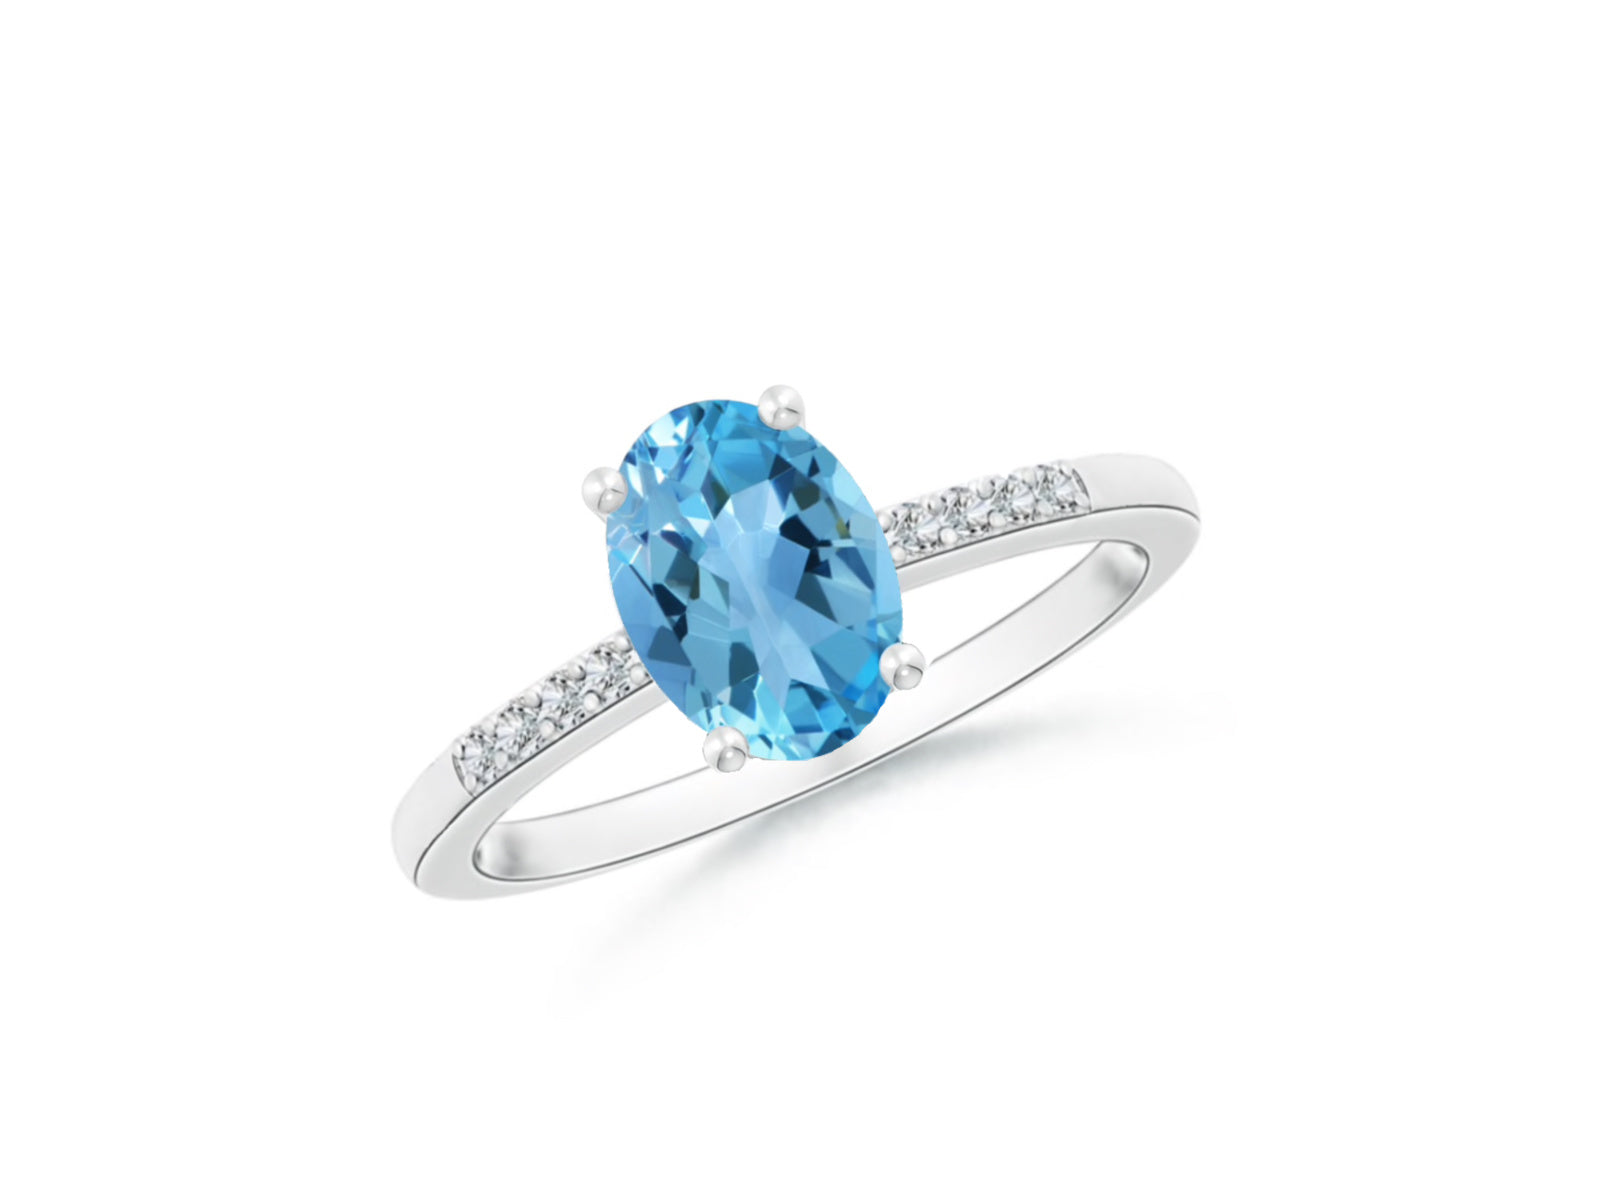 14k Oval Swiss Blue Topaz and Diamonds December Birthstone Ring